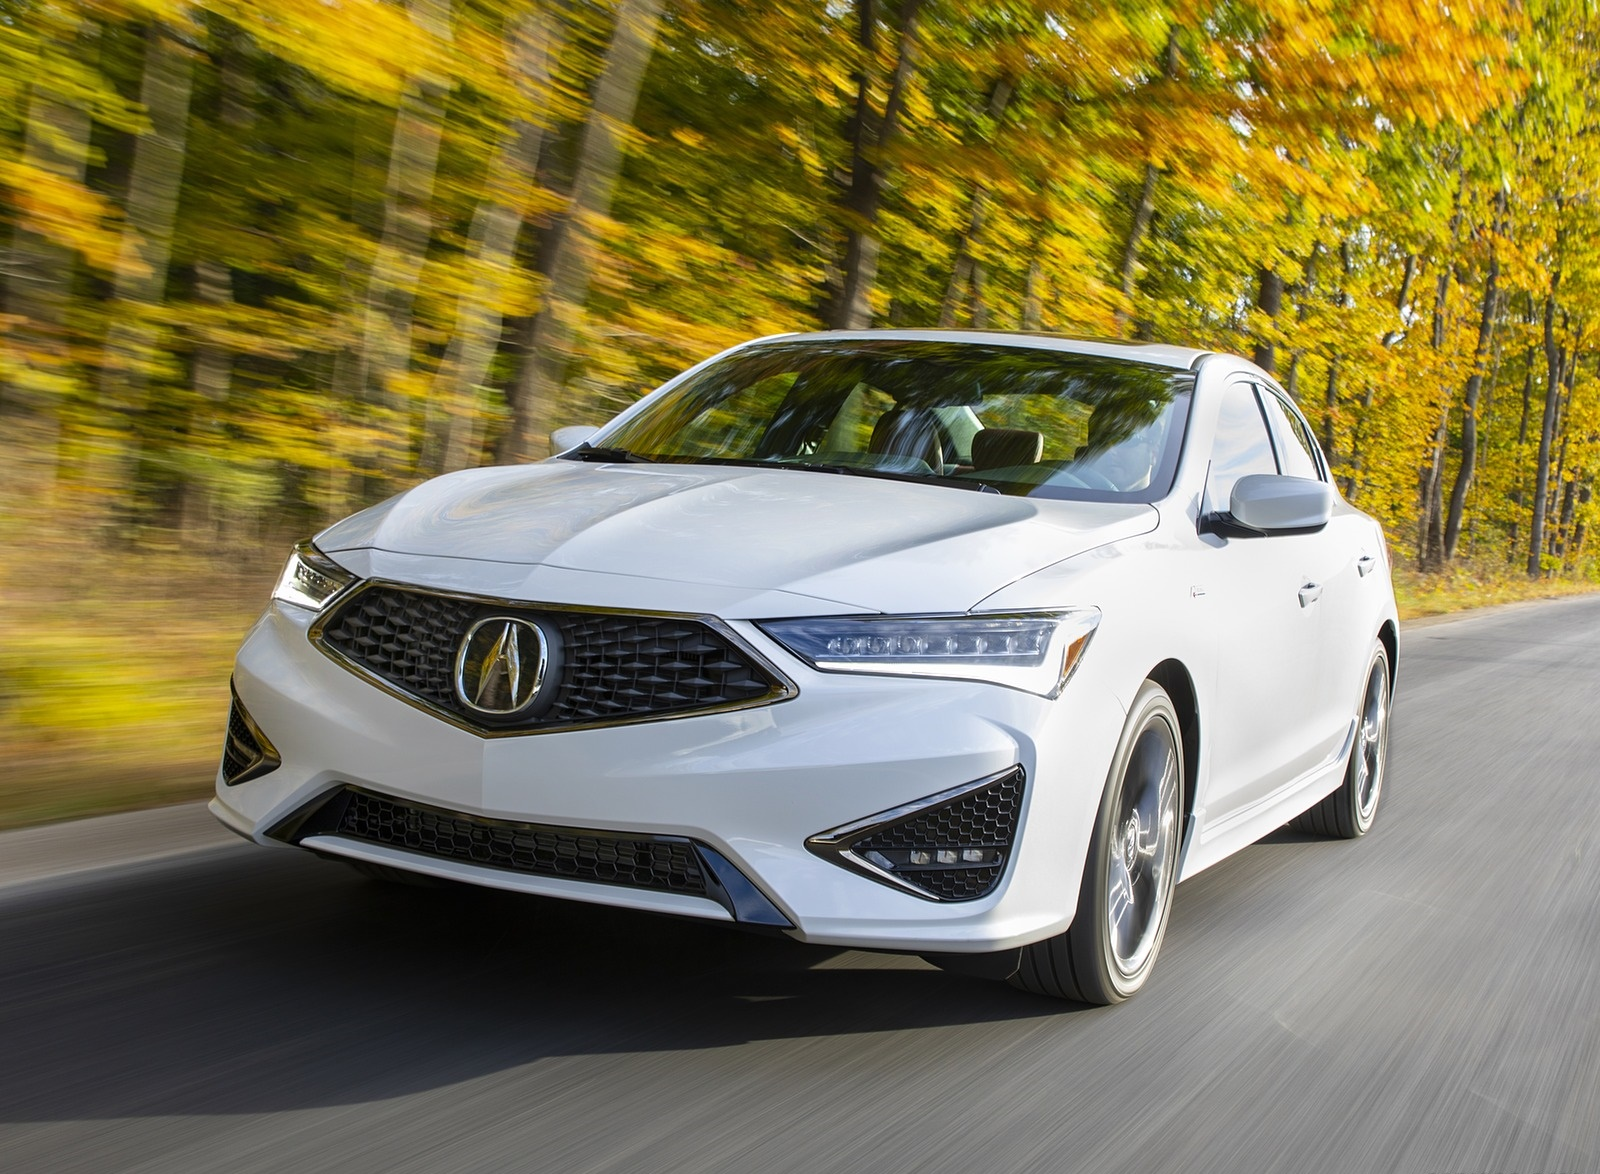 2020 Acura ILX A-Spec Front Wallpapers (8)